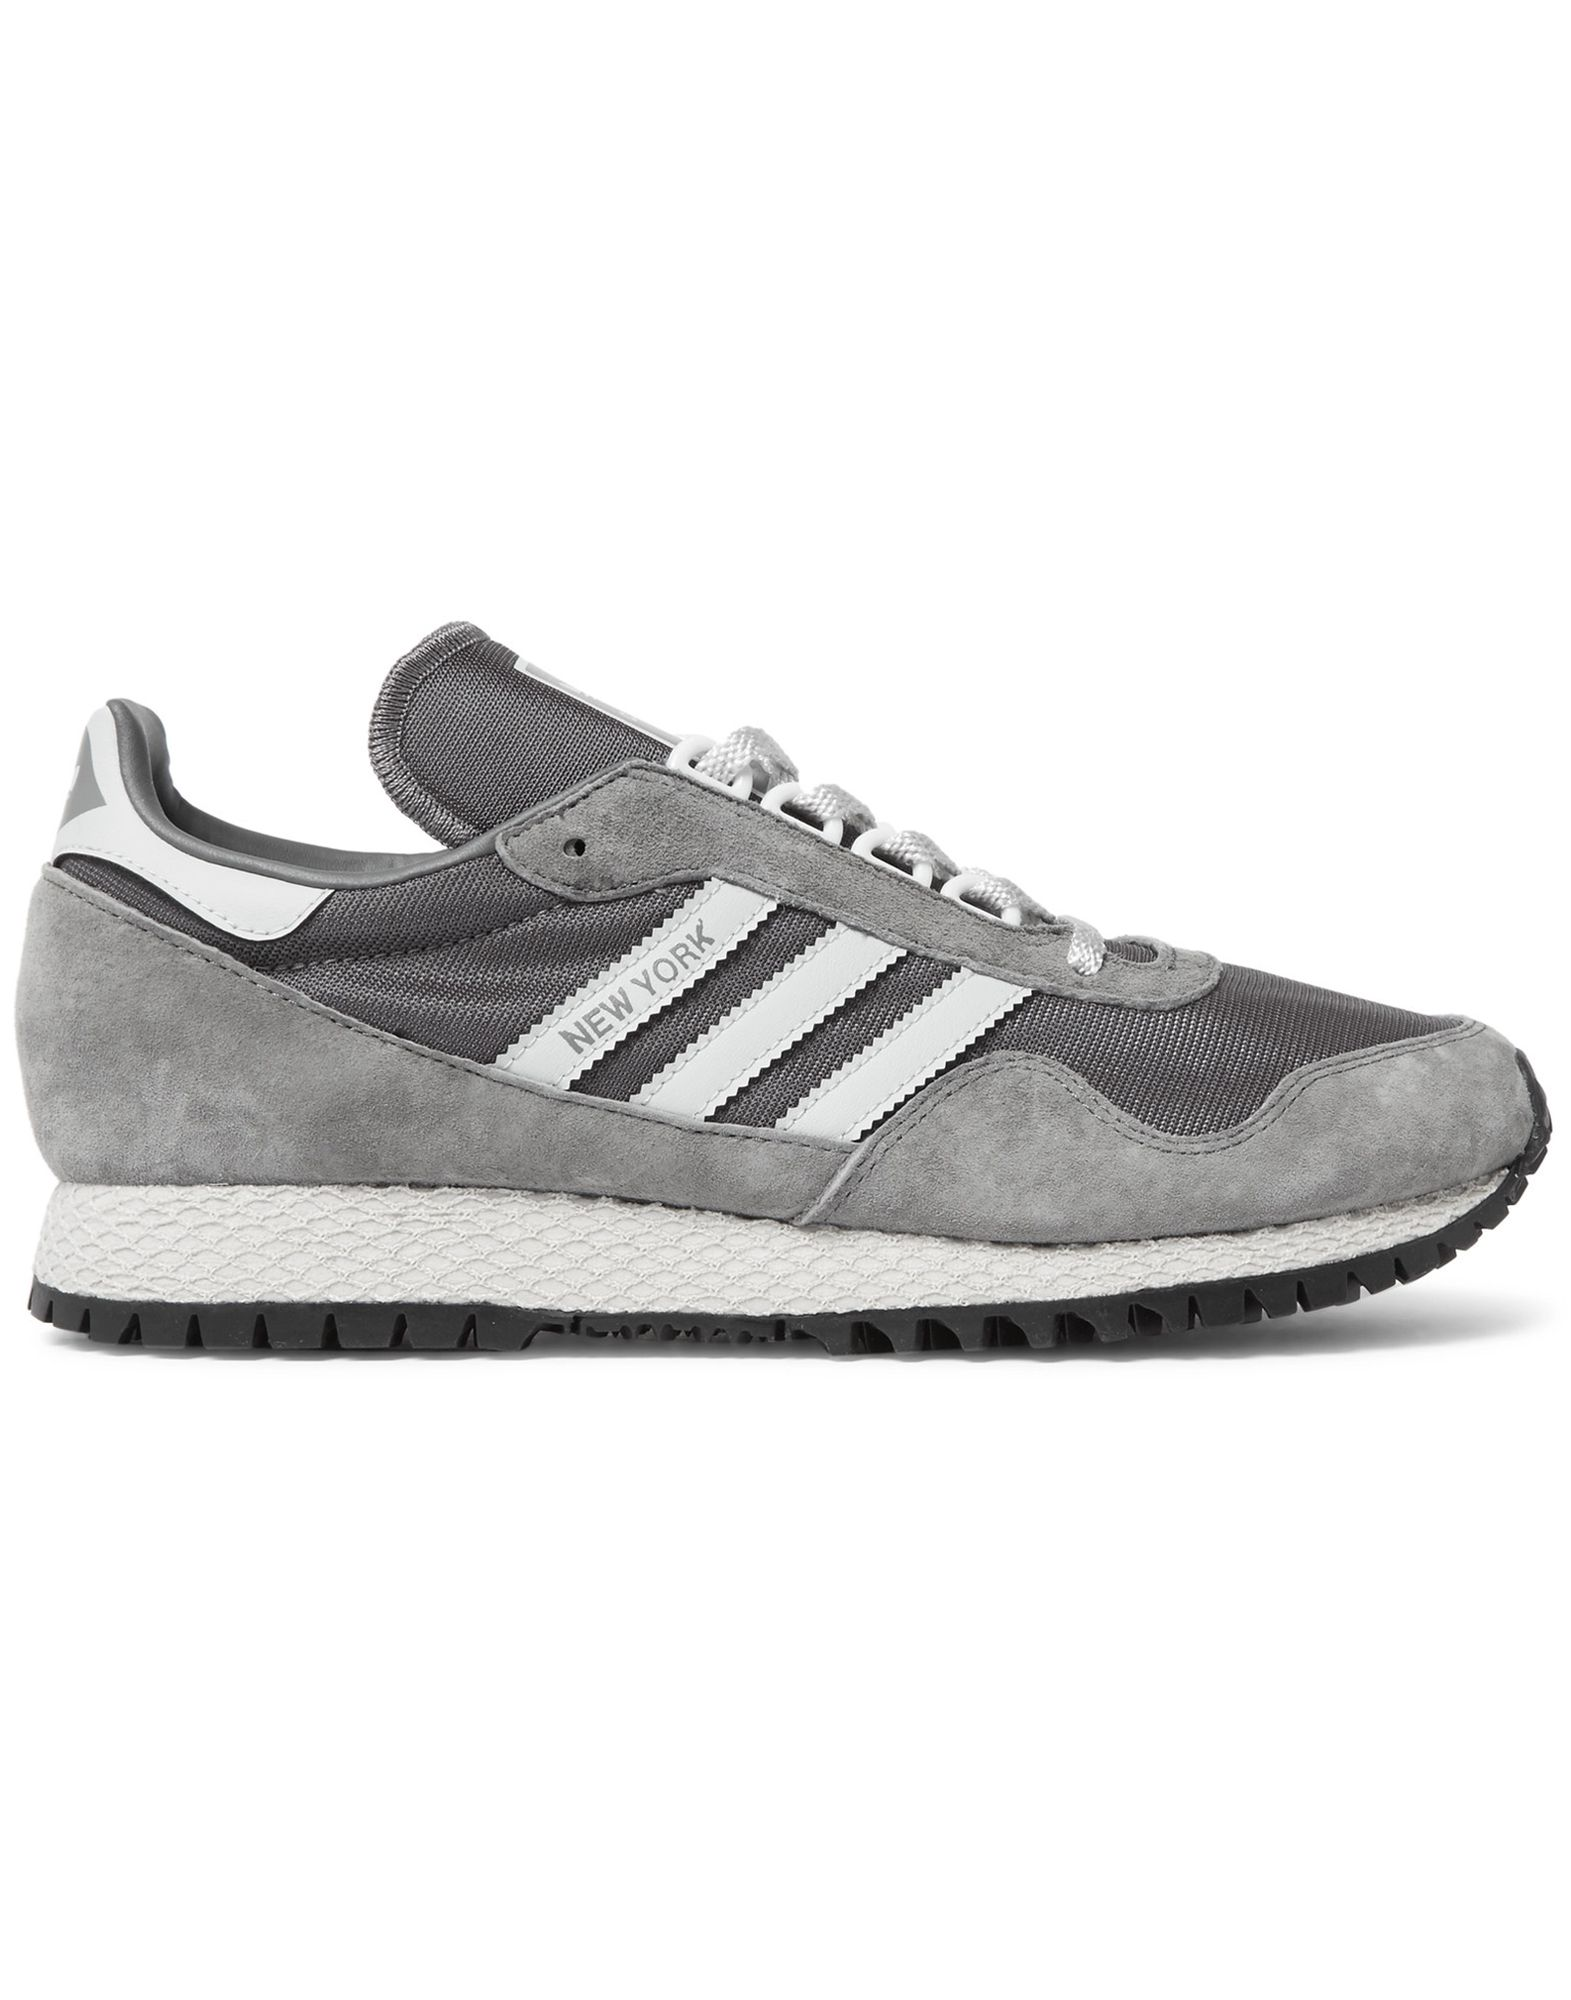 Adidas Originals Uomo - 11539540RF